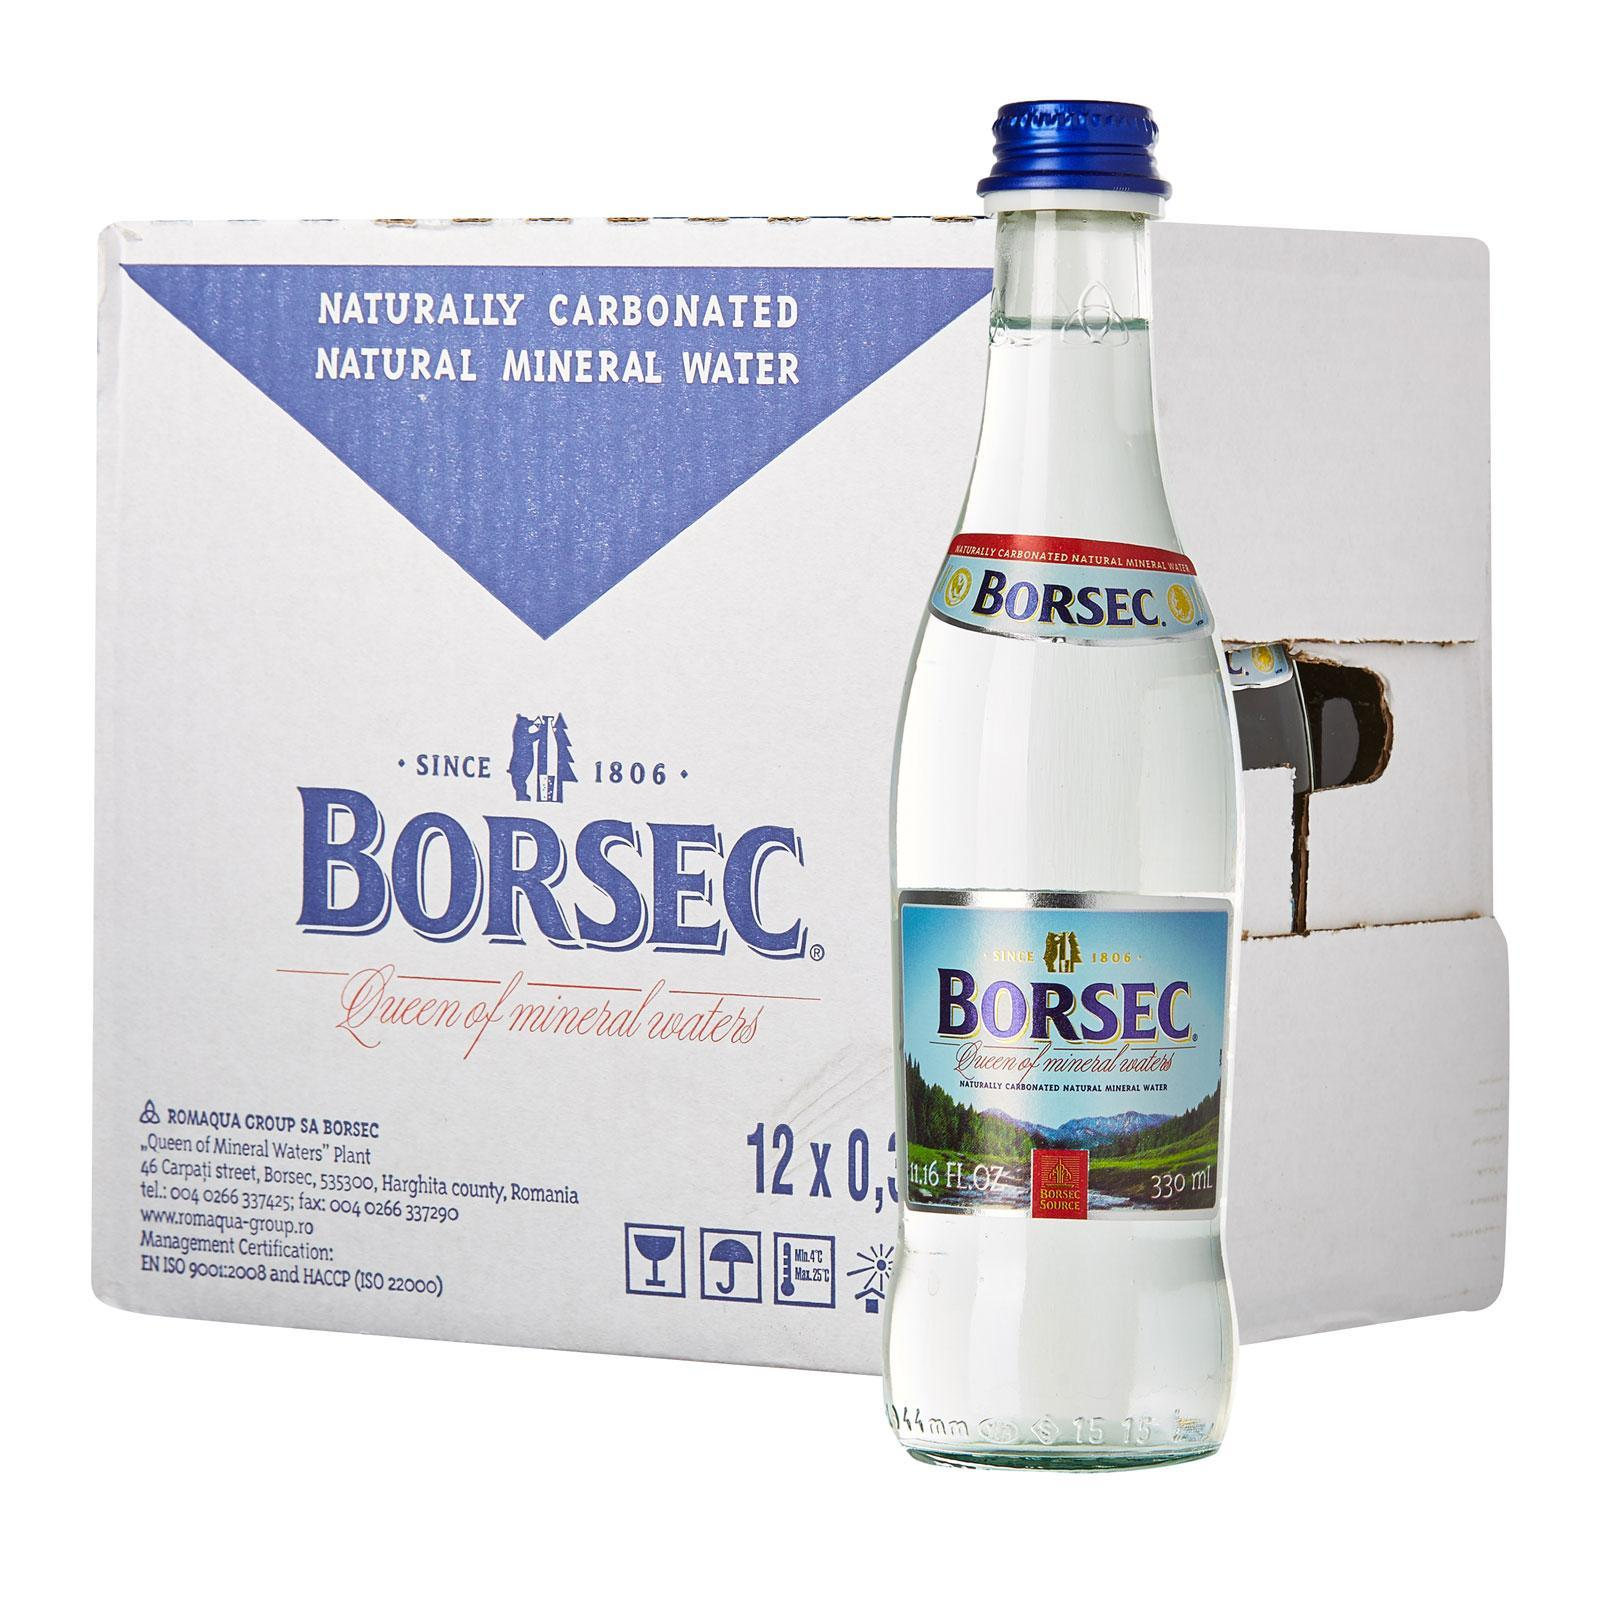 Borsec Naturally Carbonated Natural Mineral Water (sparkling) By Redmart.